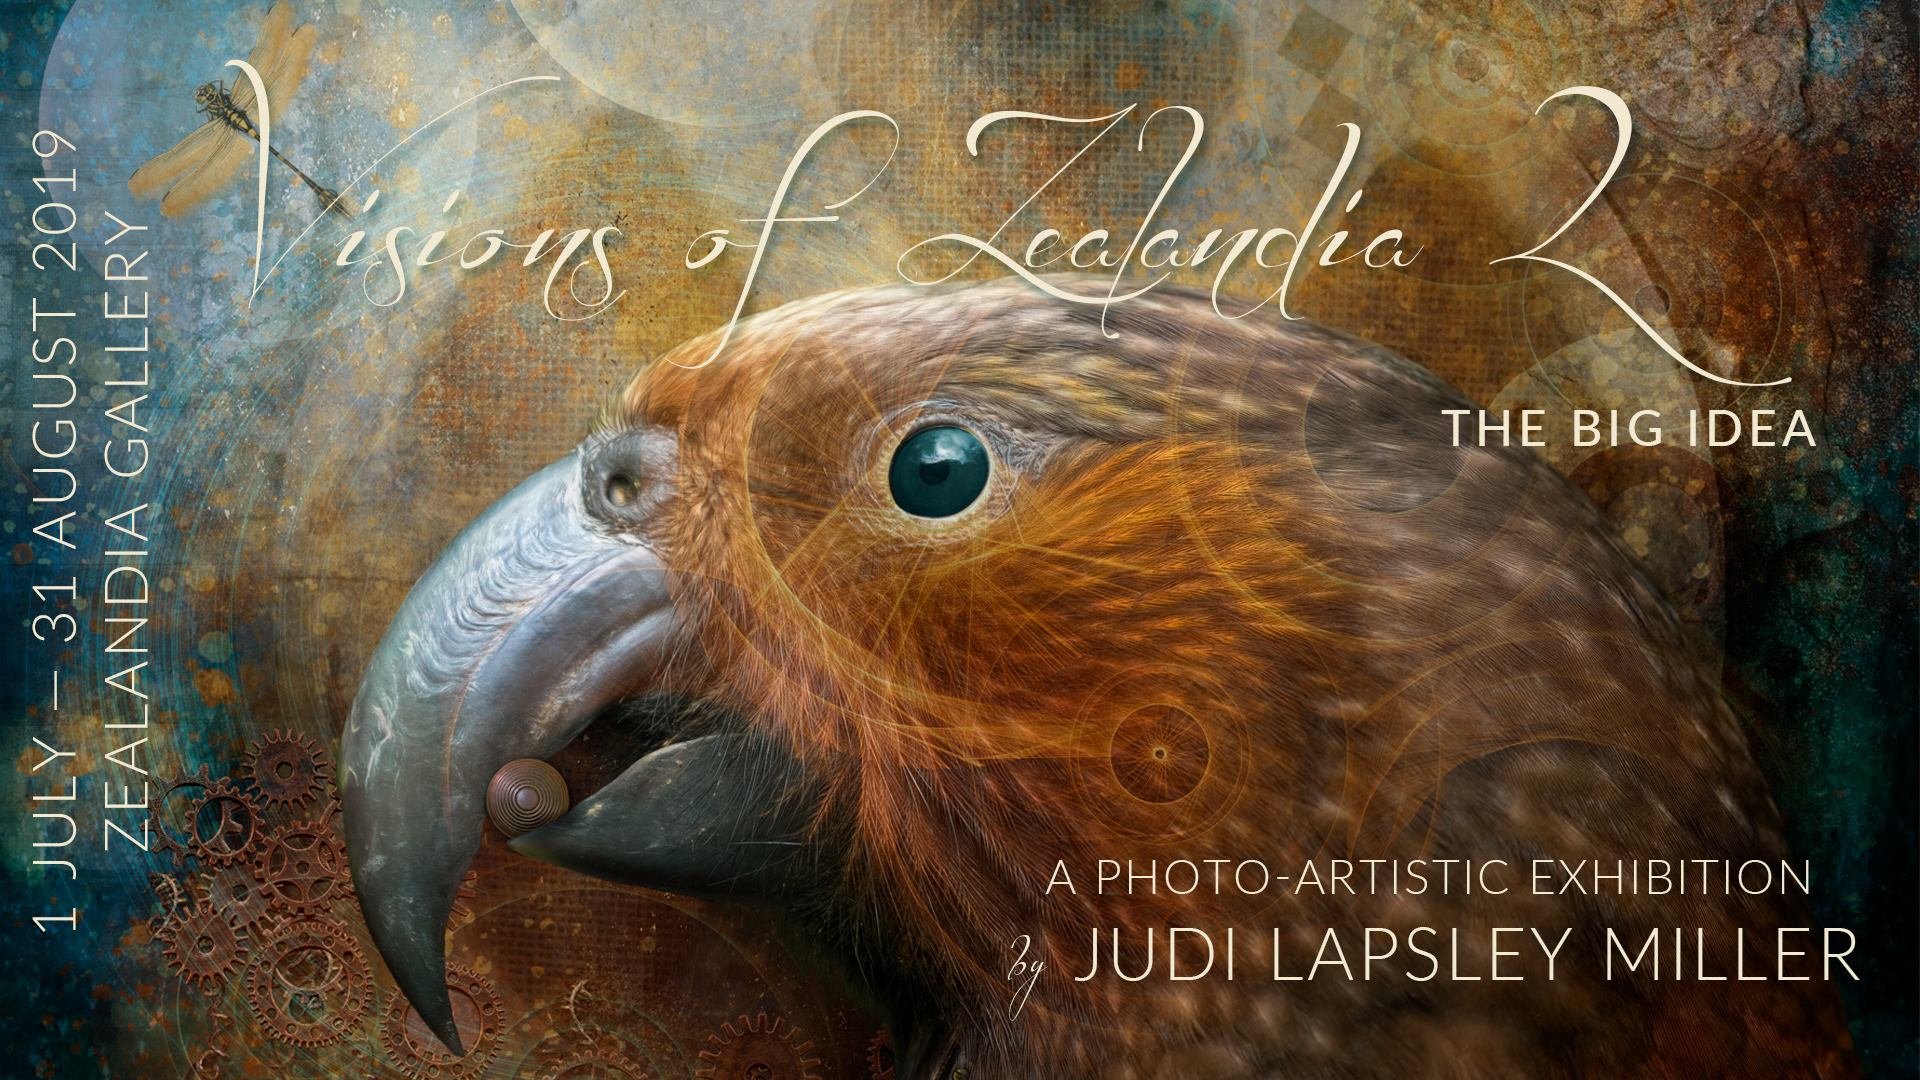 Visions of Zealandia 2: the big idea by Judi Lapsley Miller - 1 Jul - 31 Aug 2019 - banner